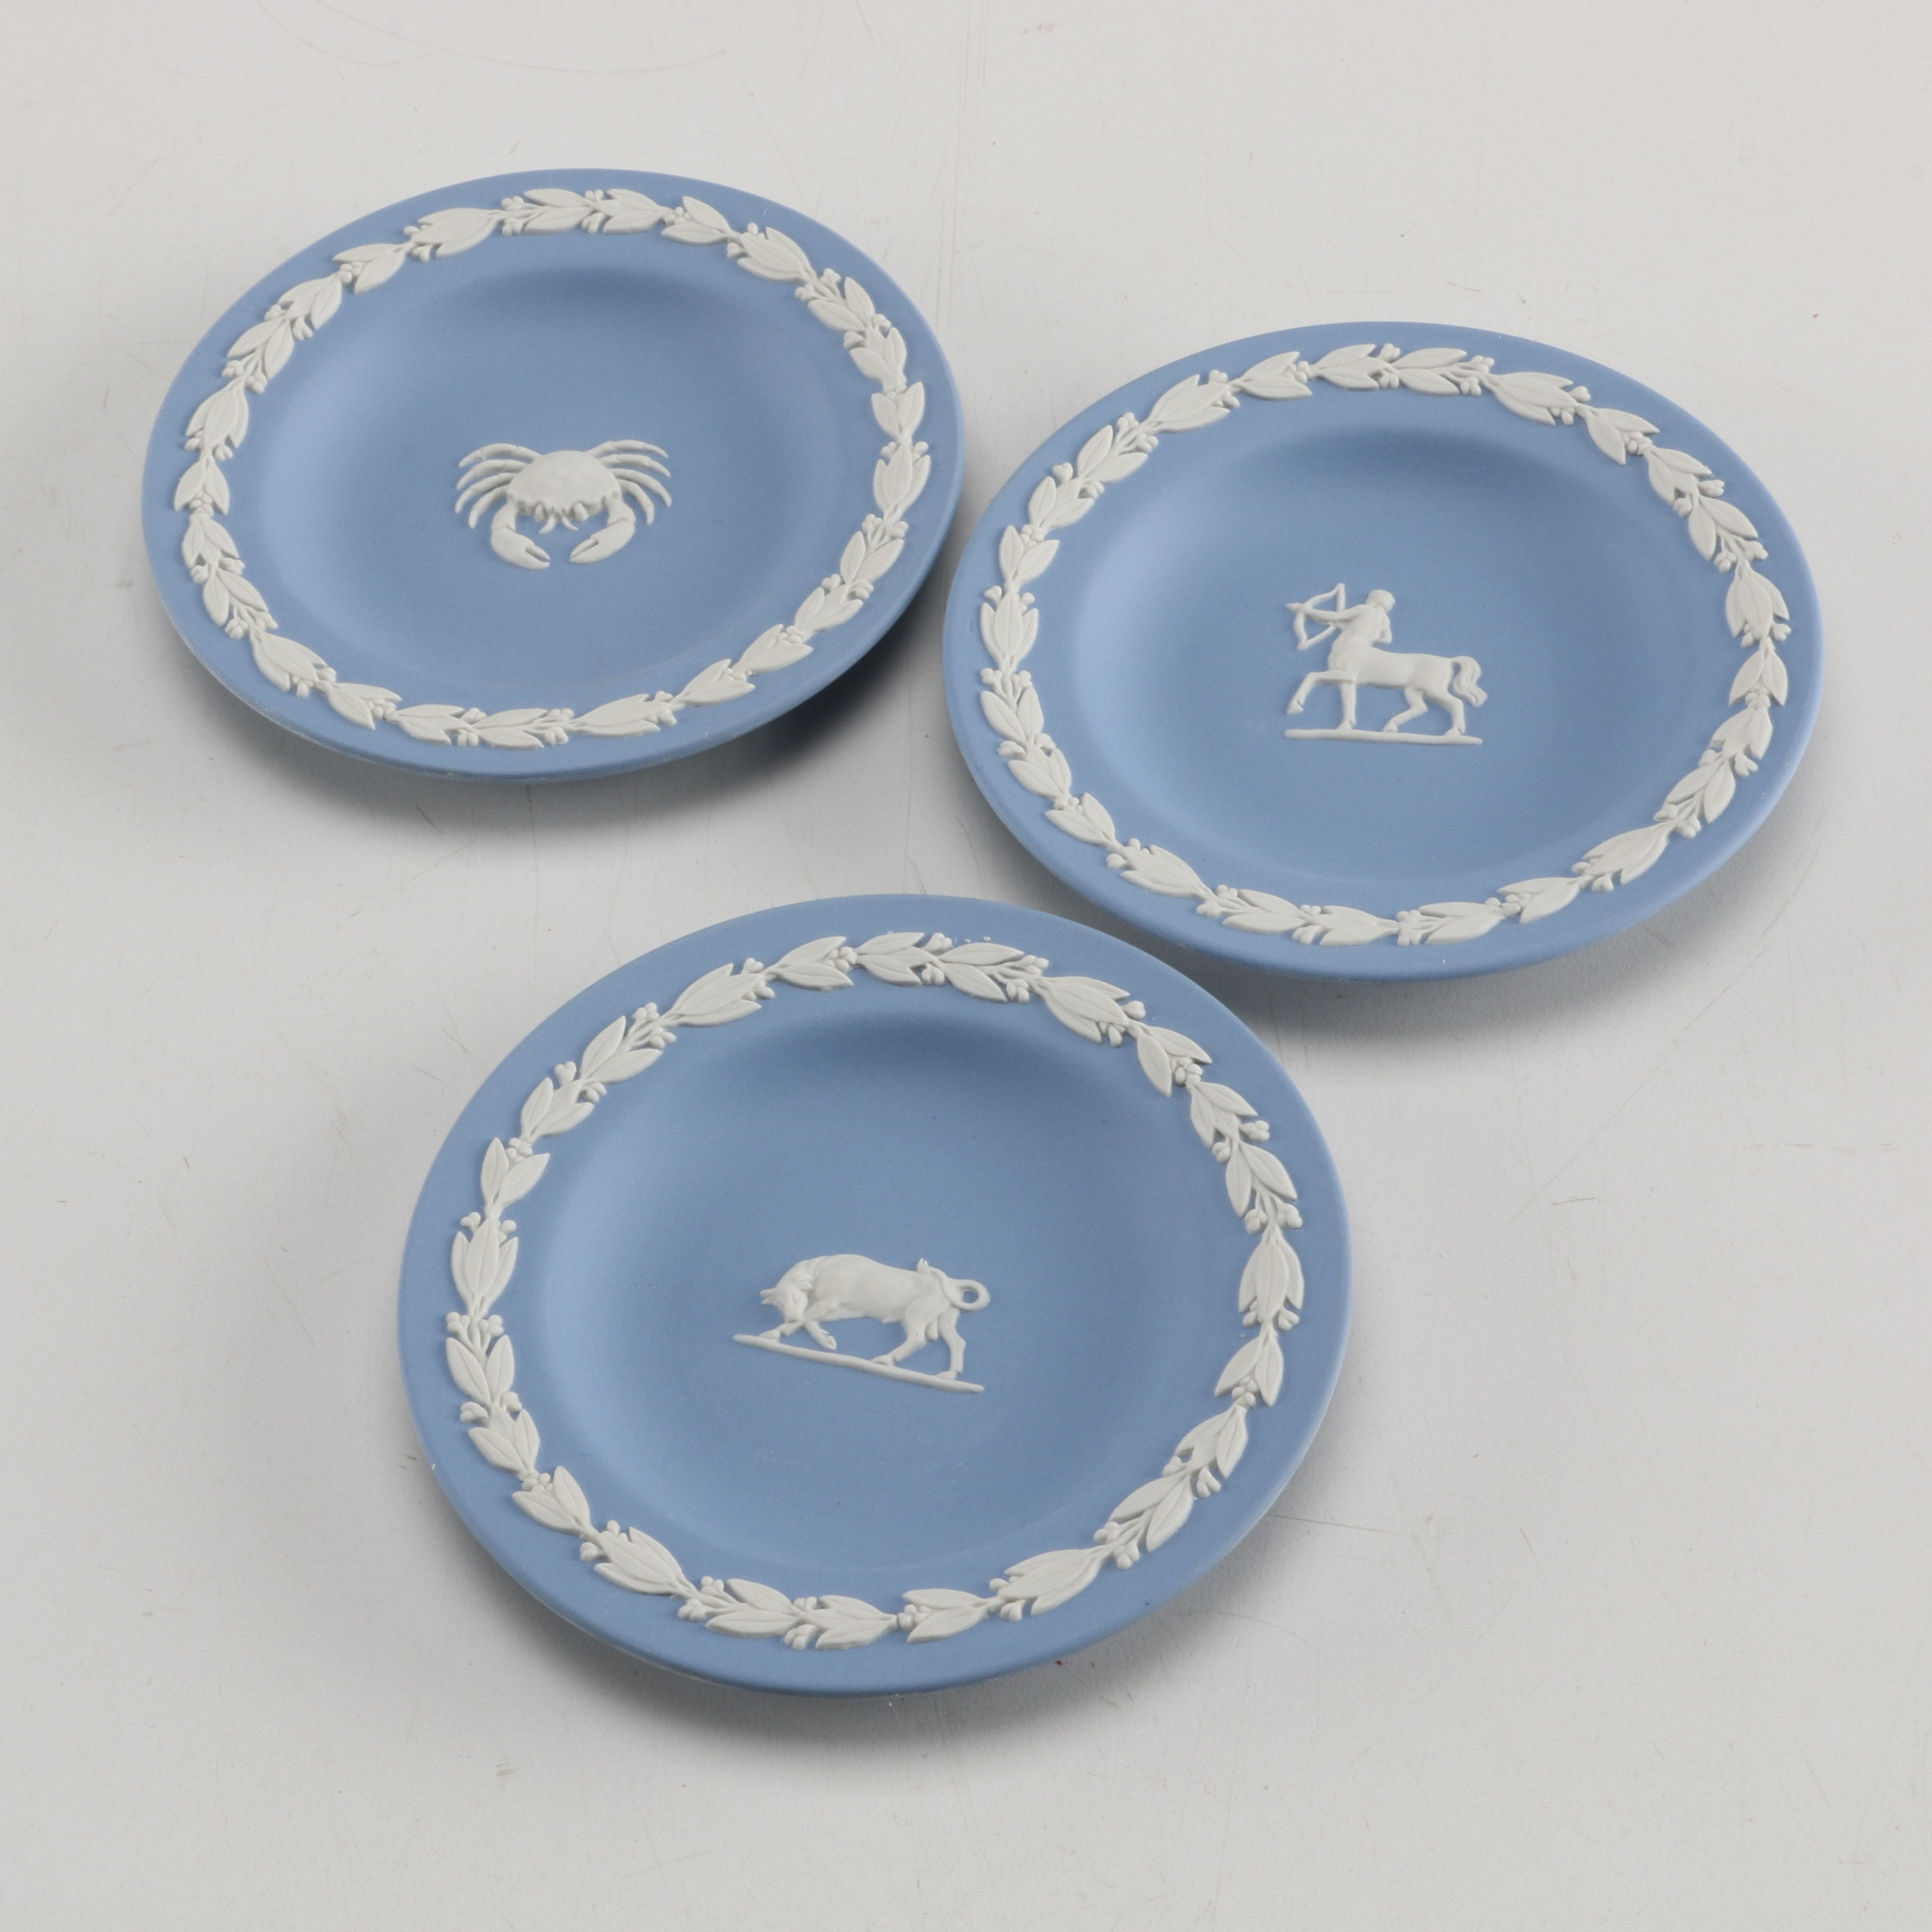 Three Small Wedgwood Zodiac Decorative Plates ...  sc 1 st  EBTH.com & Three Small Wedgwood Zodiac Decorative Plates : EBTH